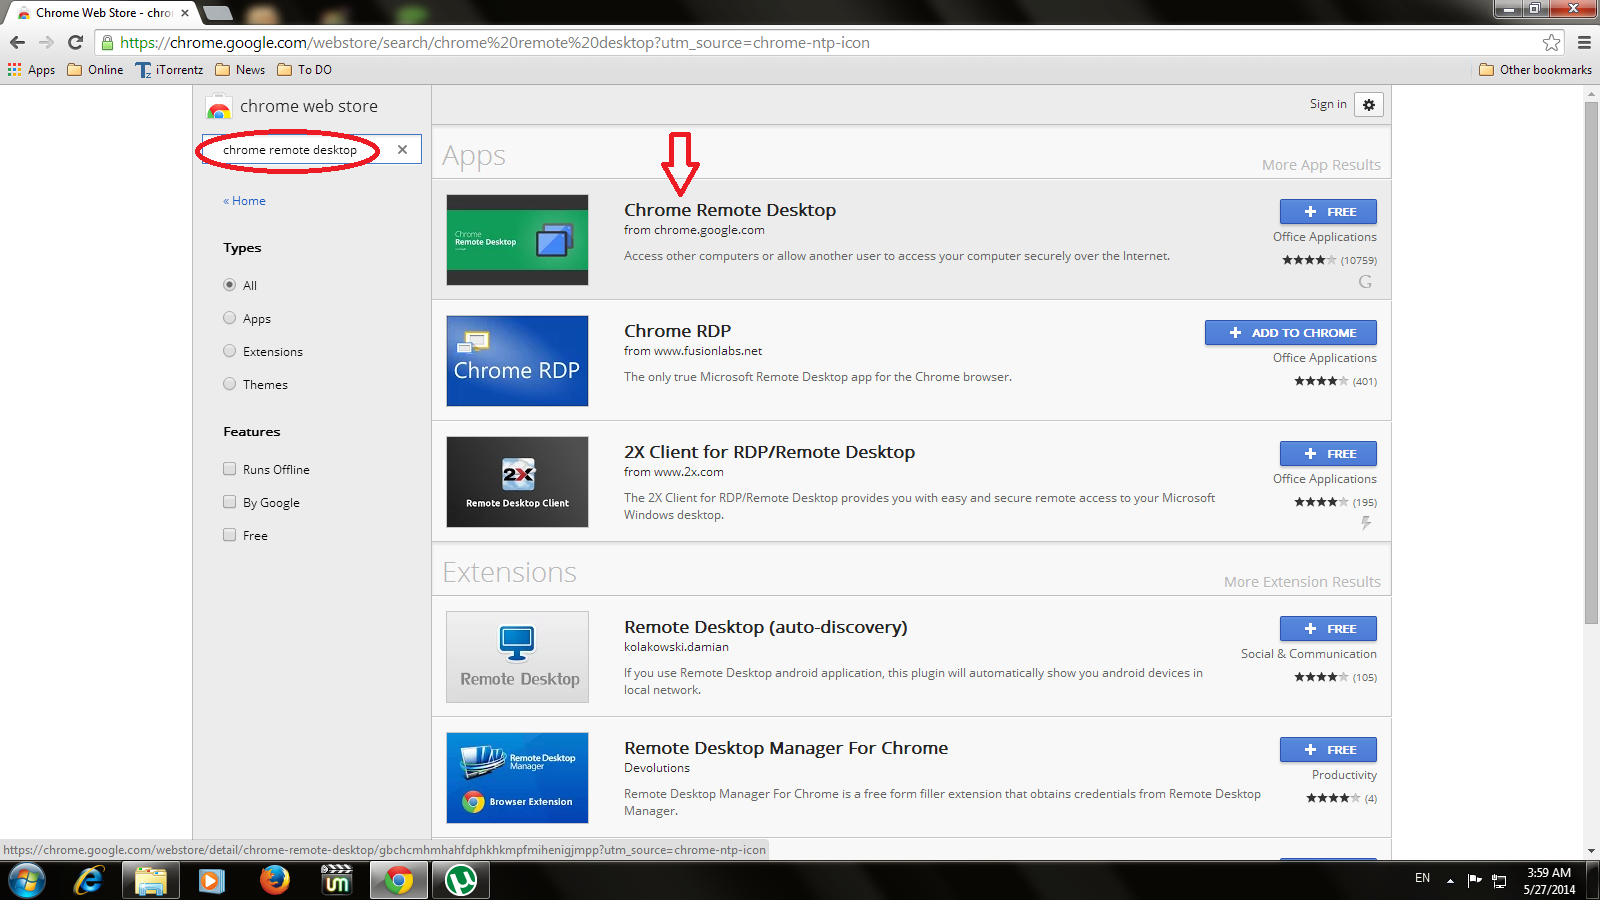 Learn New Things: How to use Chrome Remote Desktop, use your